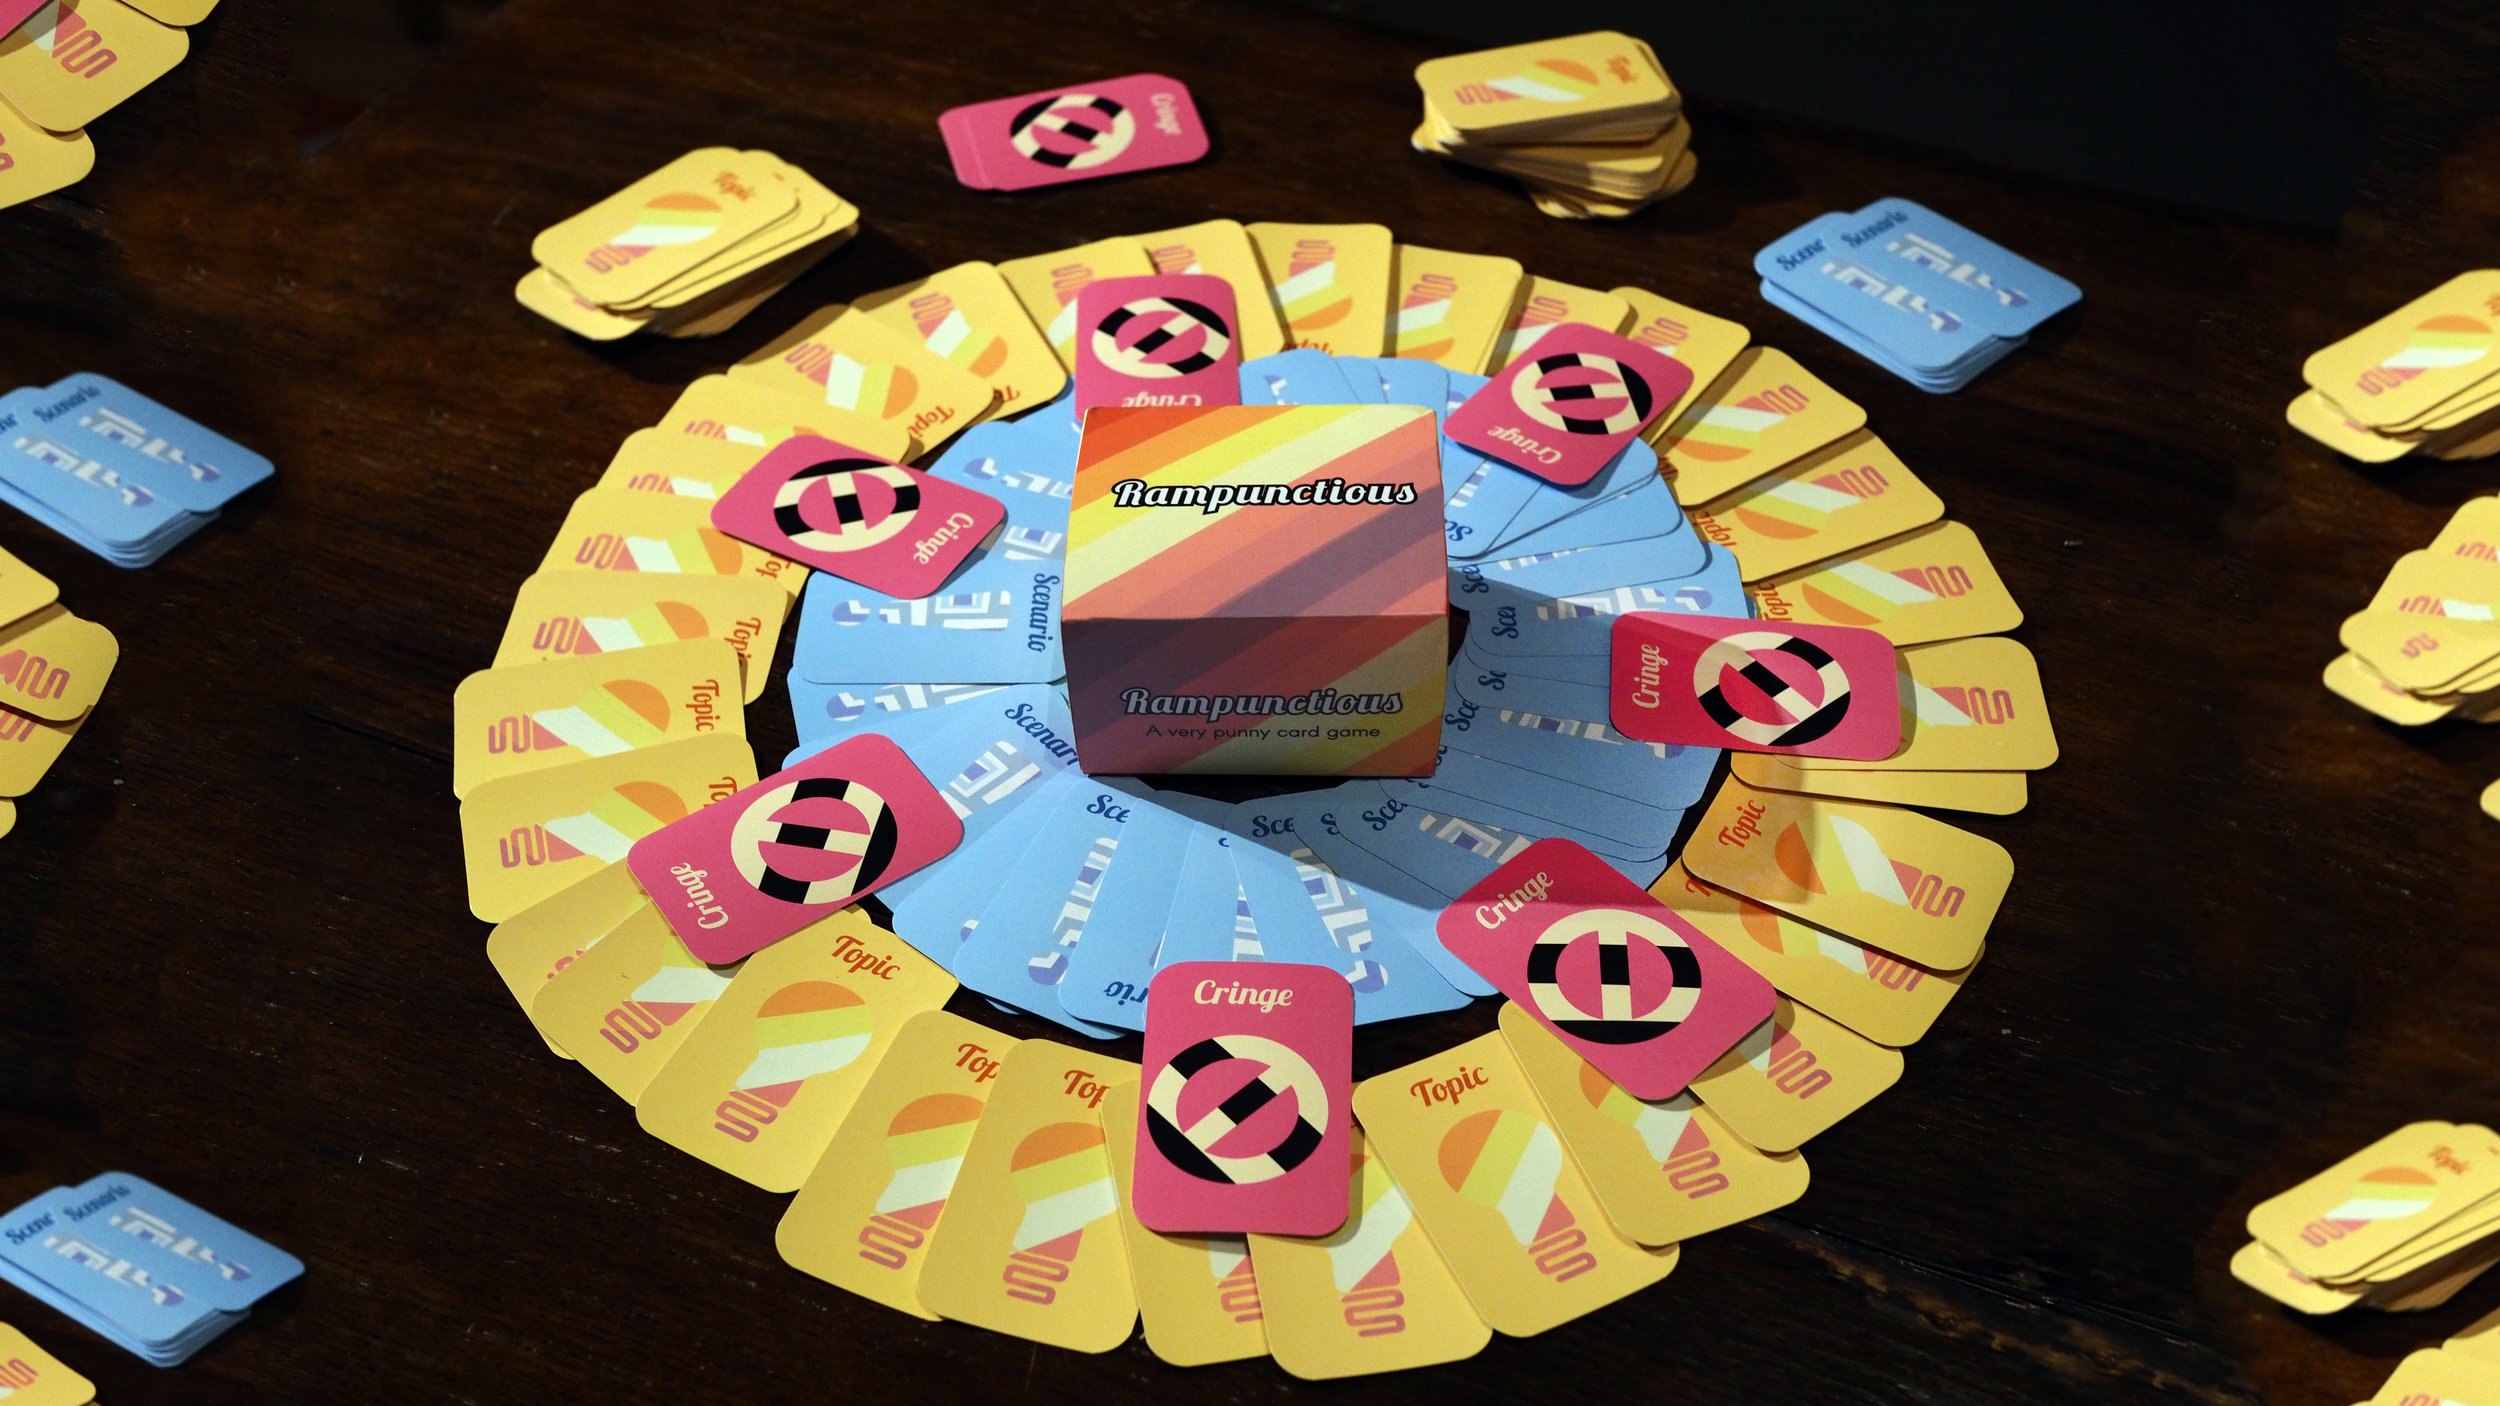 Rampunctious - Rampunctious is the game of terrible puns! 4+ player and whoever makes the best, most or worst puns wins.Game Design: Jen CareyArt Directior: Basil LimCringe Art: Eveliina DurchamnnAdditional Writing: John Fitzgerald